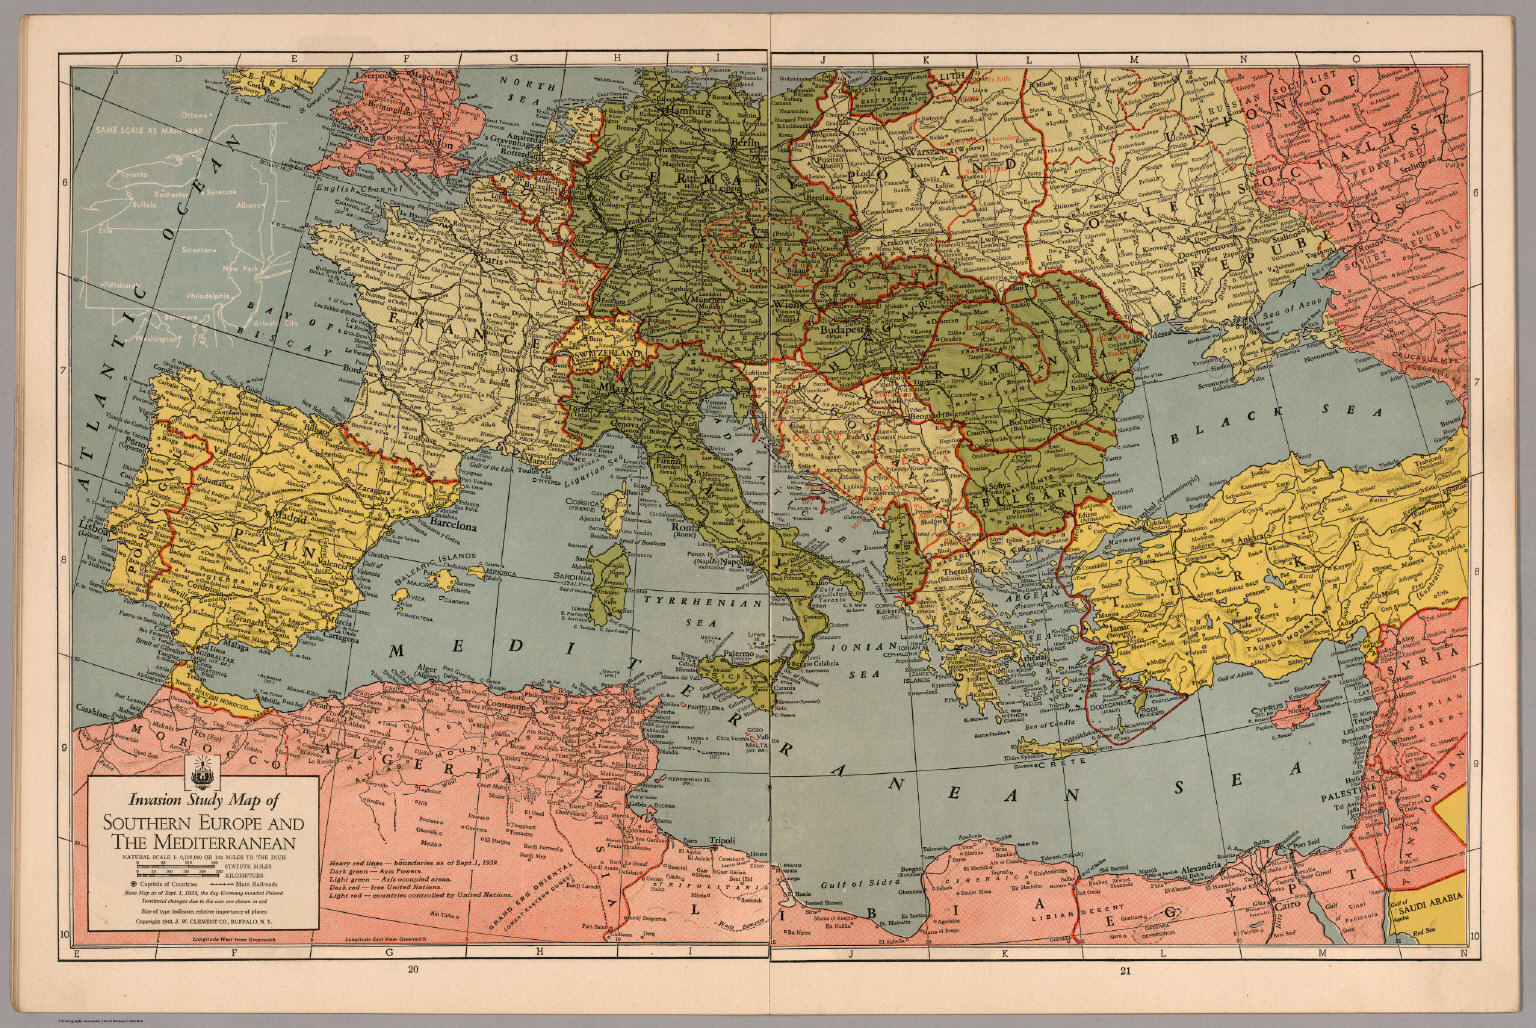 Invasion Study map of Southern Europe and Mediterranean  David